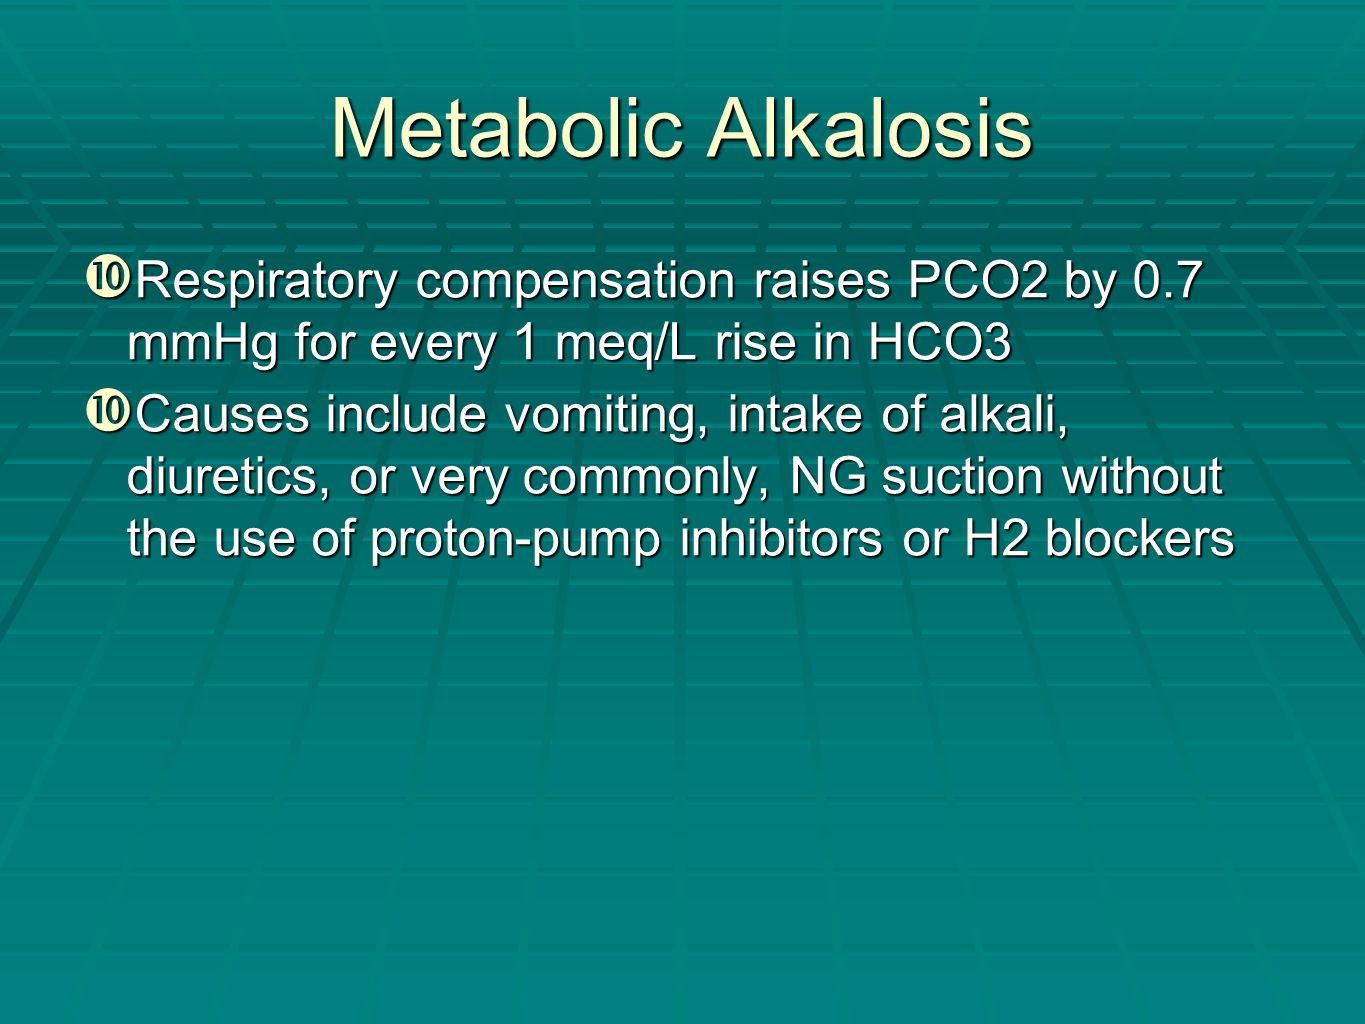 Metabolic Alkalosis Respiratory compensation raises PCO2 by 0.7 mmHg for every 1 meq/L rise in HCO3.